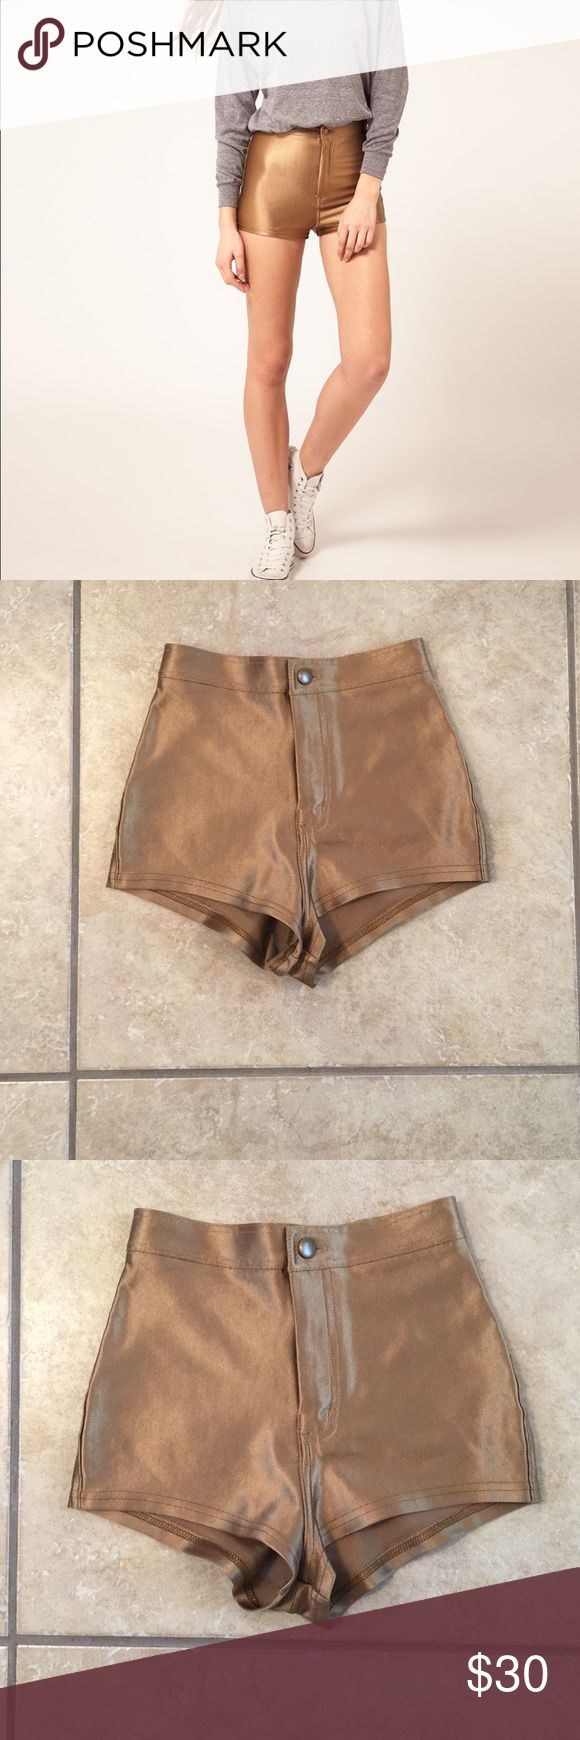 AMERICAN APPAREL women's DISCO Gold Shorts XS American Apparel women's Gold Disco Shorts.  Size: X Small.  In Great condition! If you have any questions feel free to ask! American Apparel Shorts